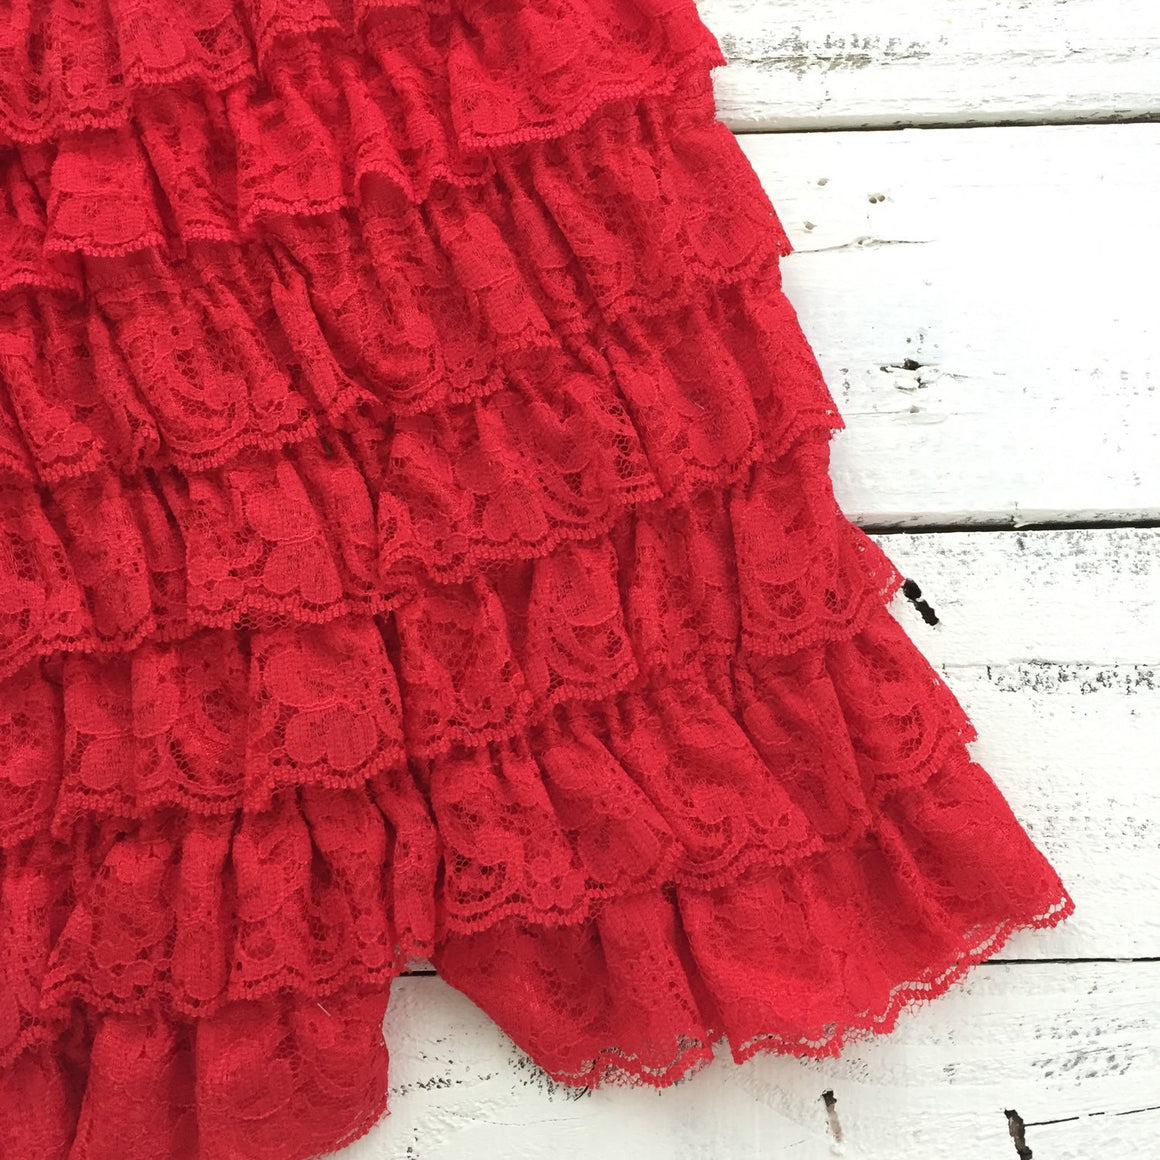 Lace Petti Romper - Embellished Christmas Red Lace Petti Romper and matching red/ivory headband